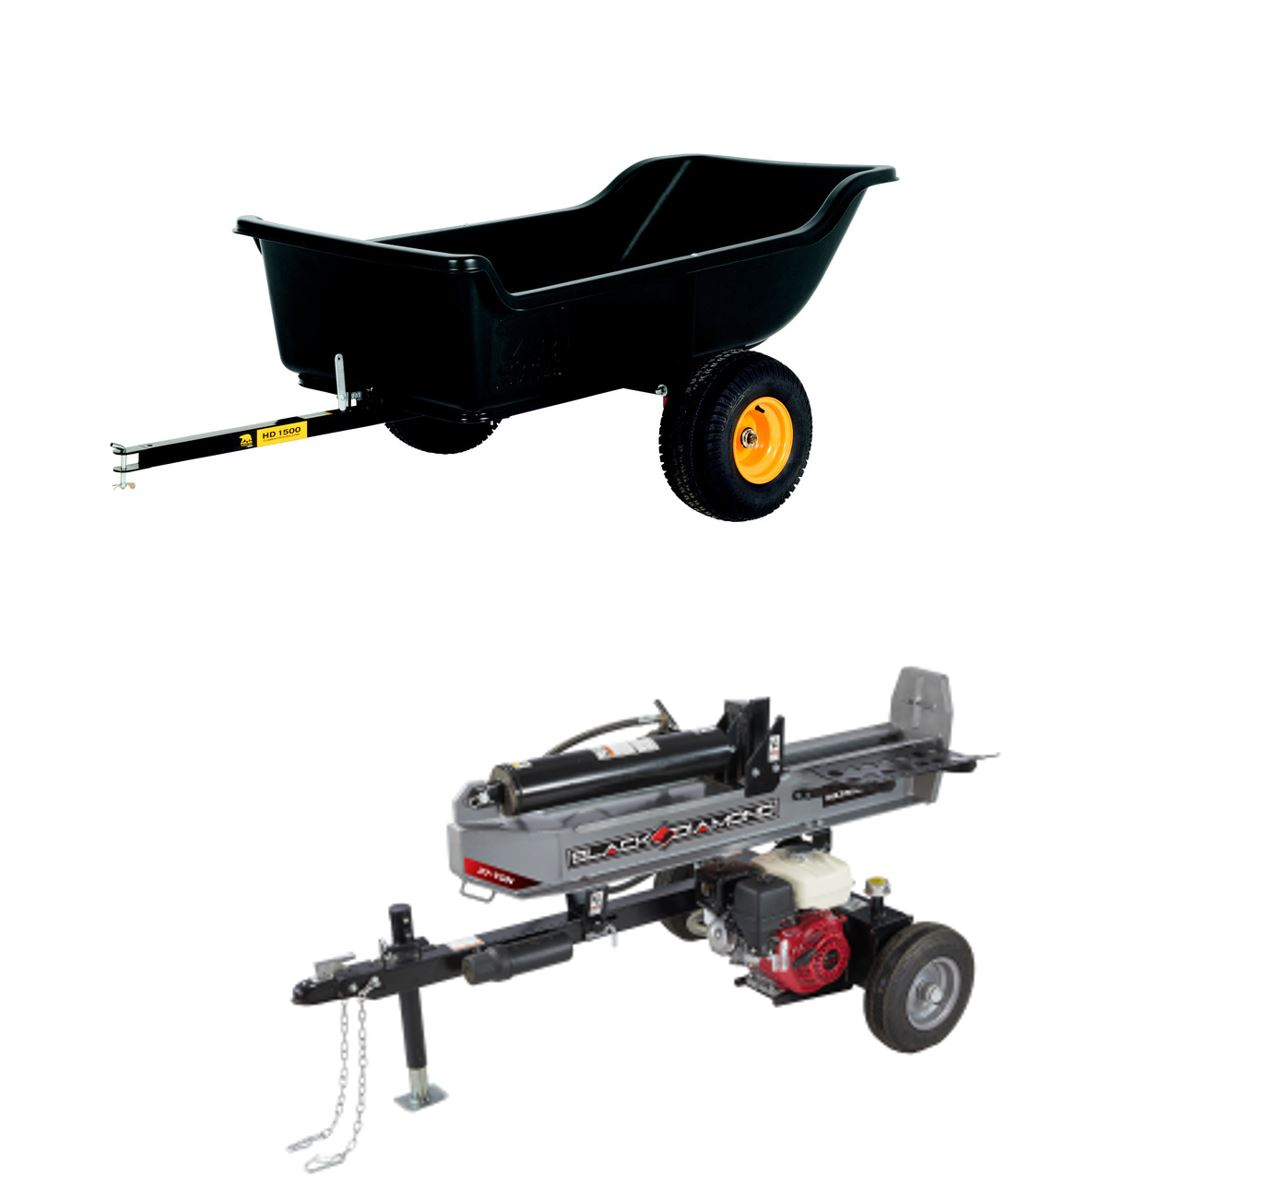 1 Hitch port so you can tow a small trailer, log splitter or spreader.